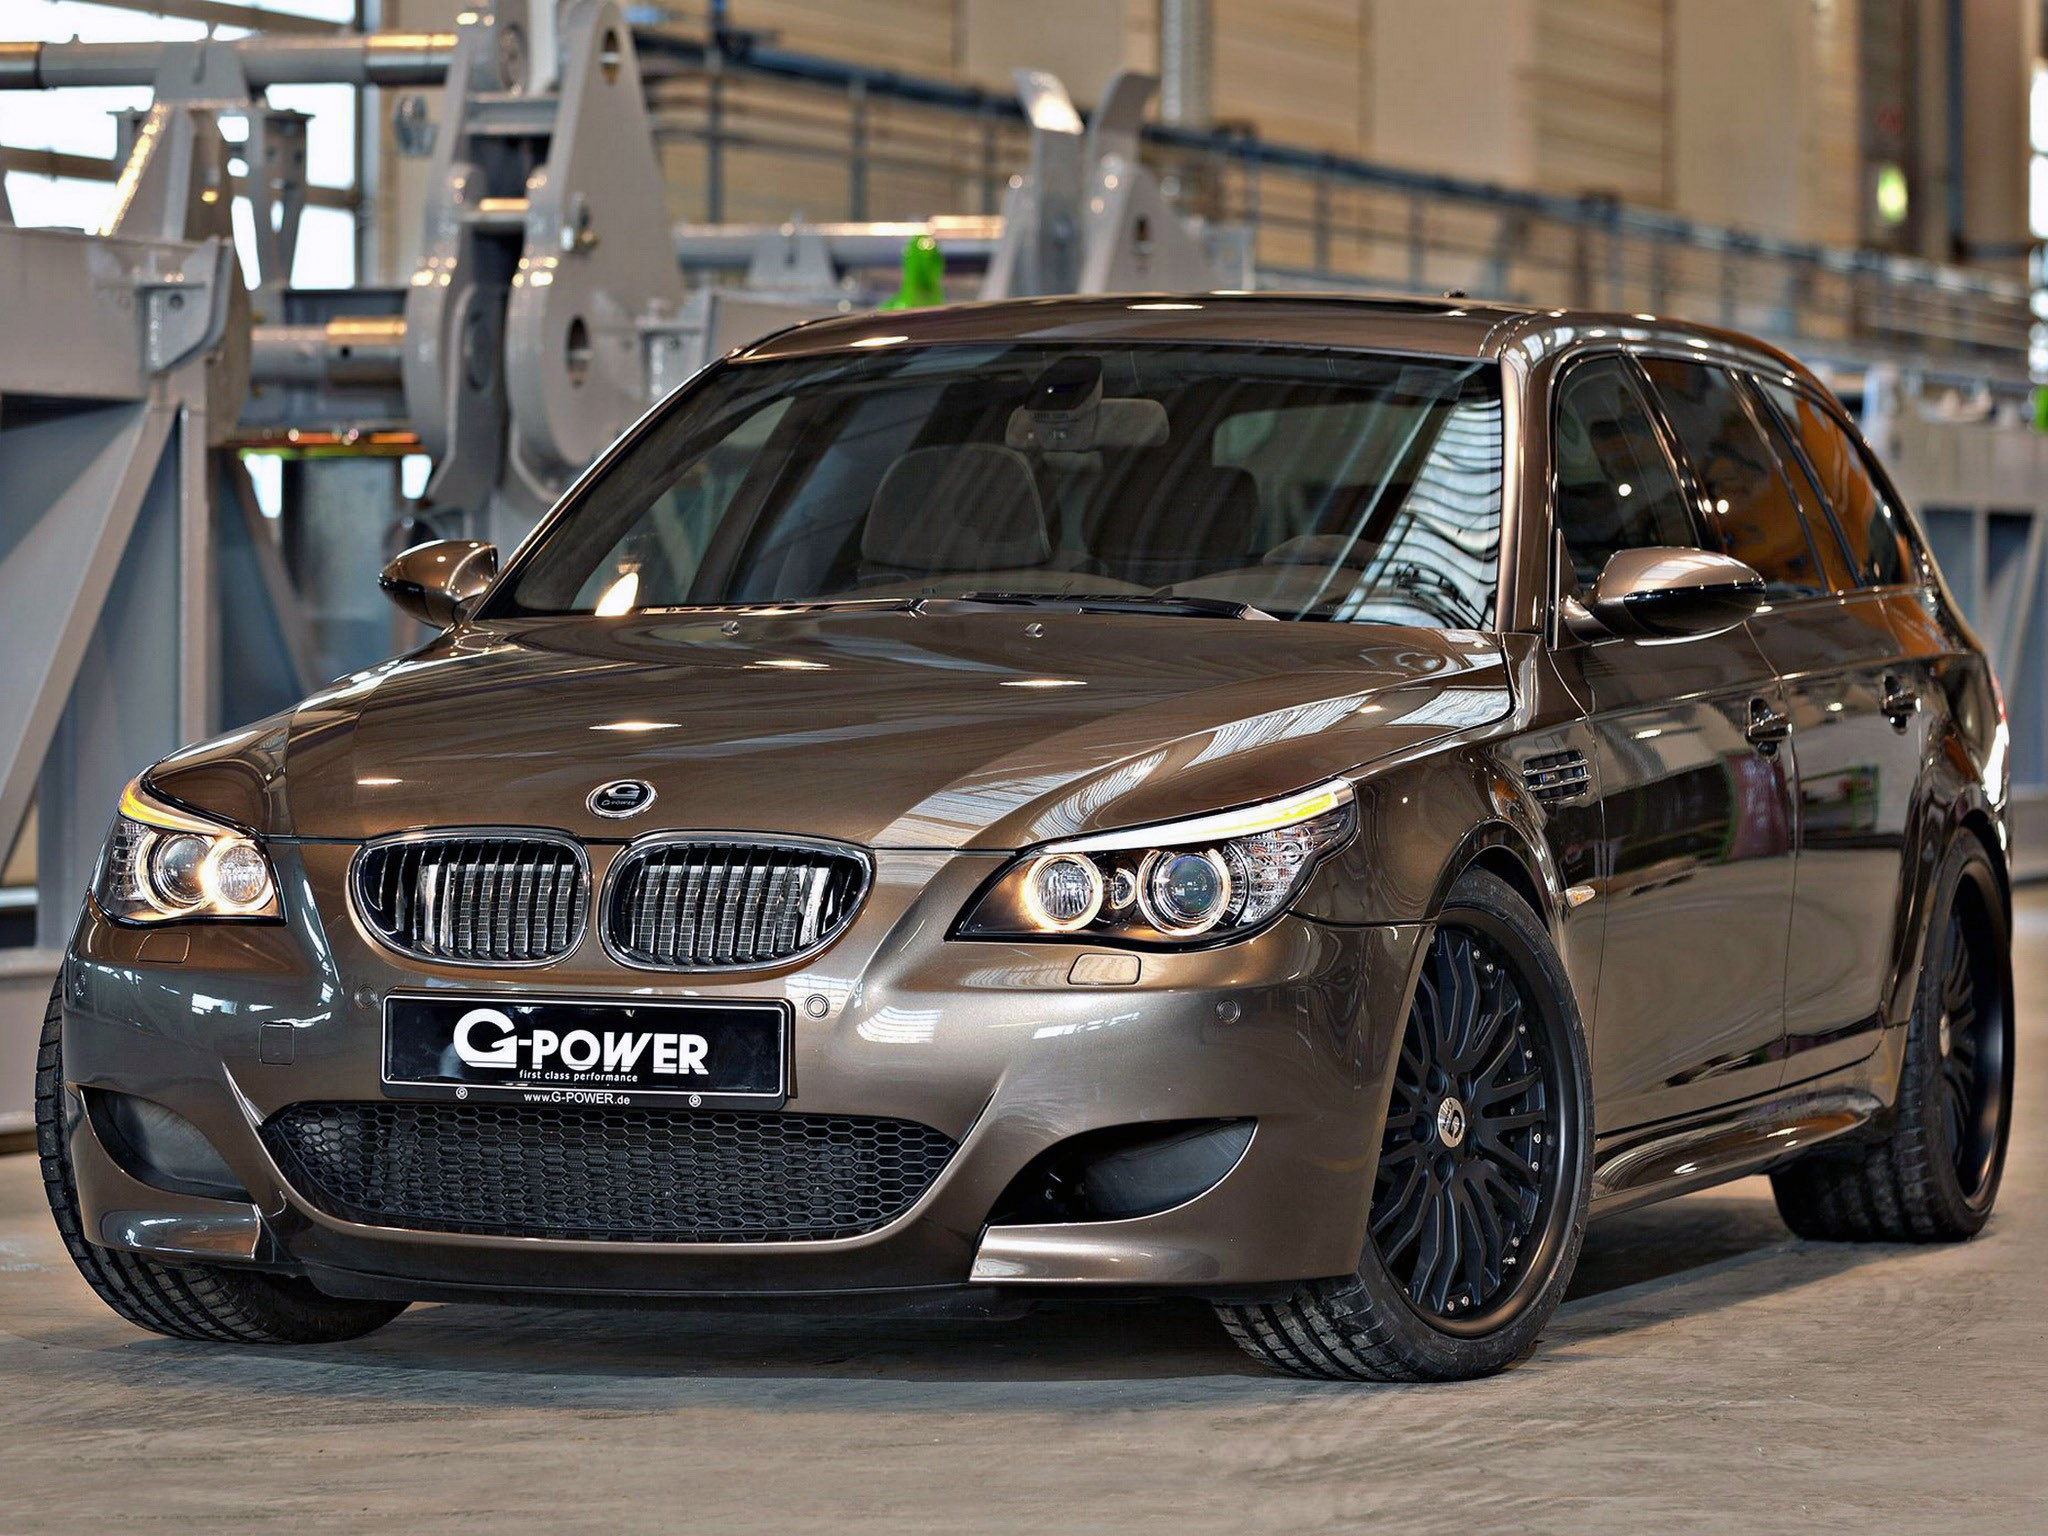 2014 G-Power - Bmw M5 Hurricane RR Touring E61